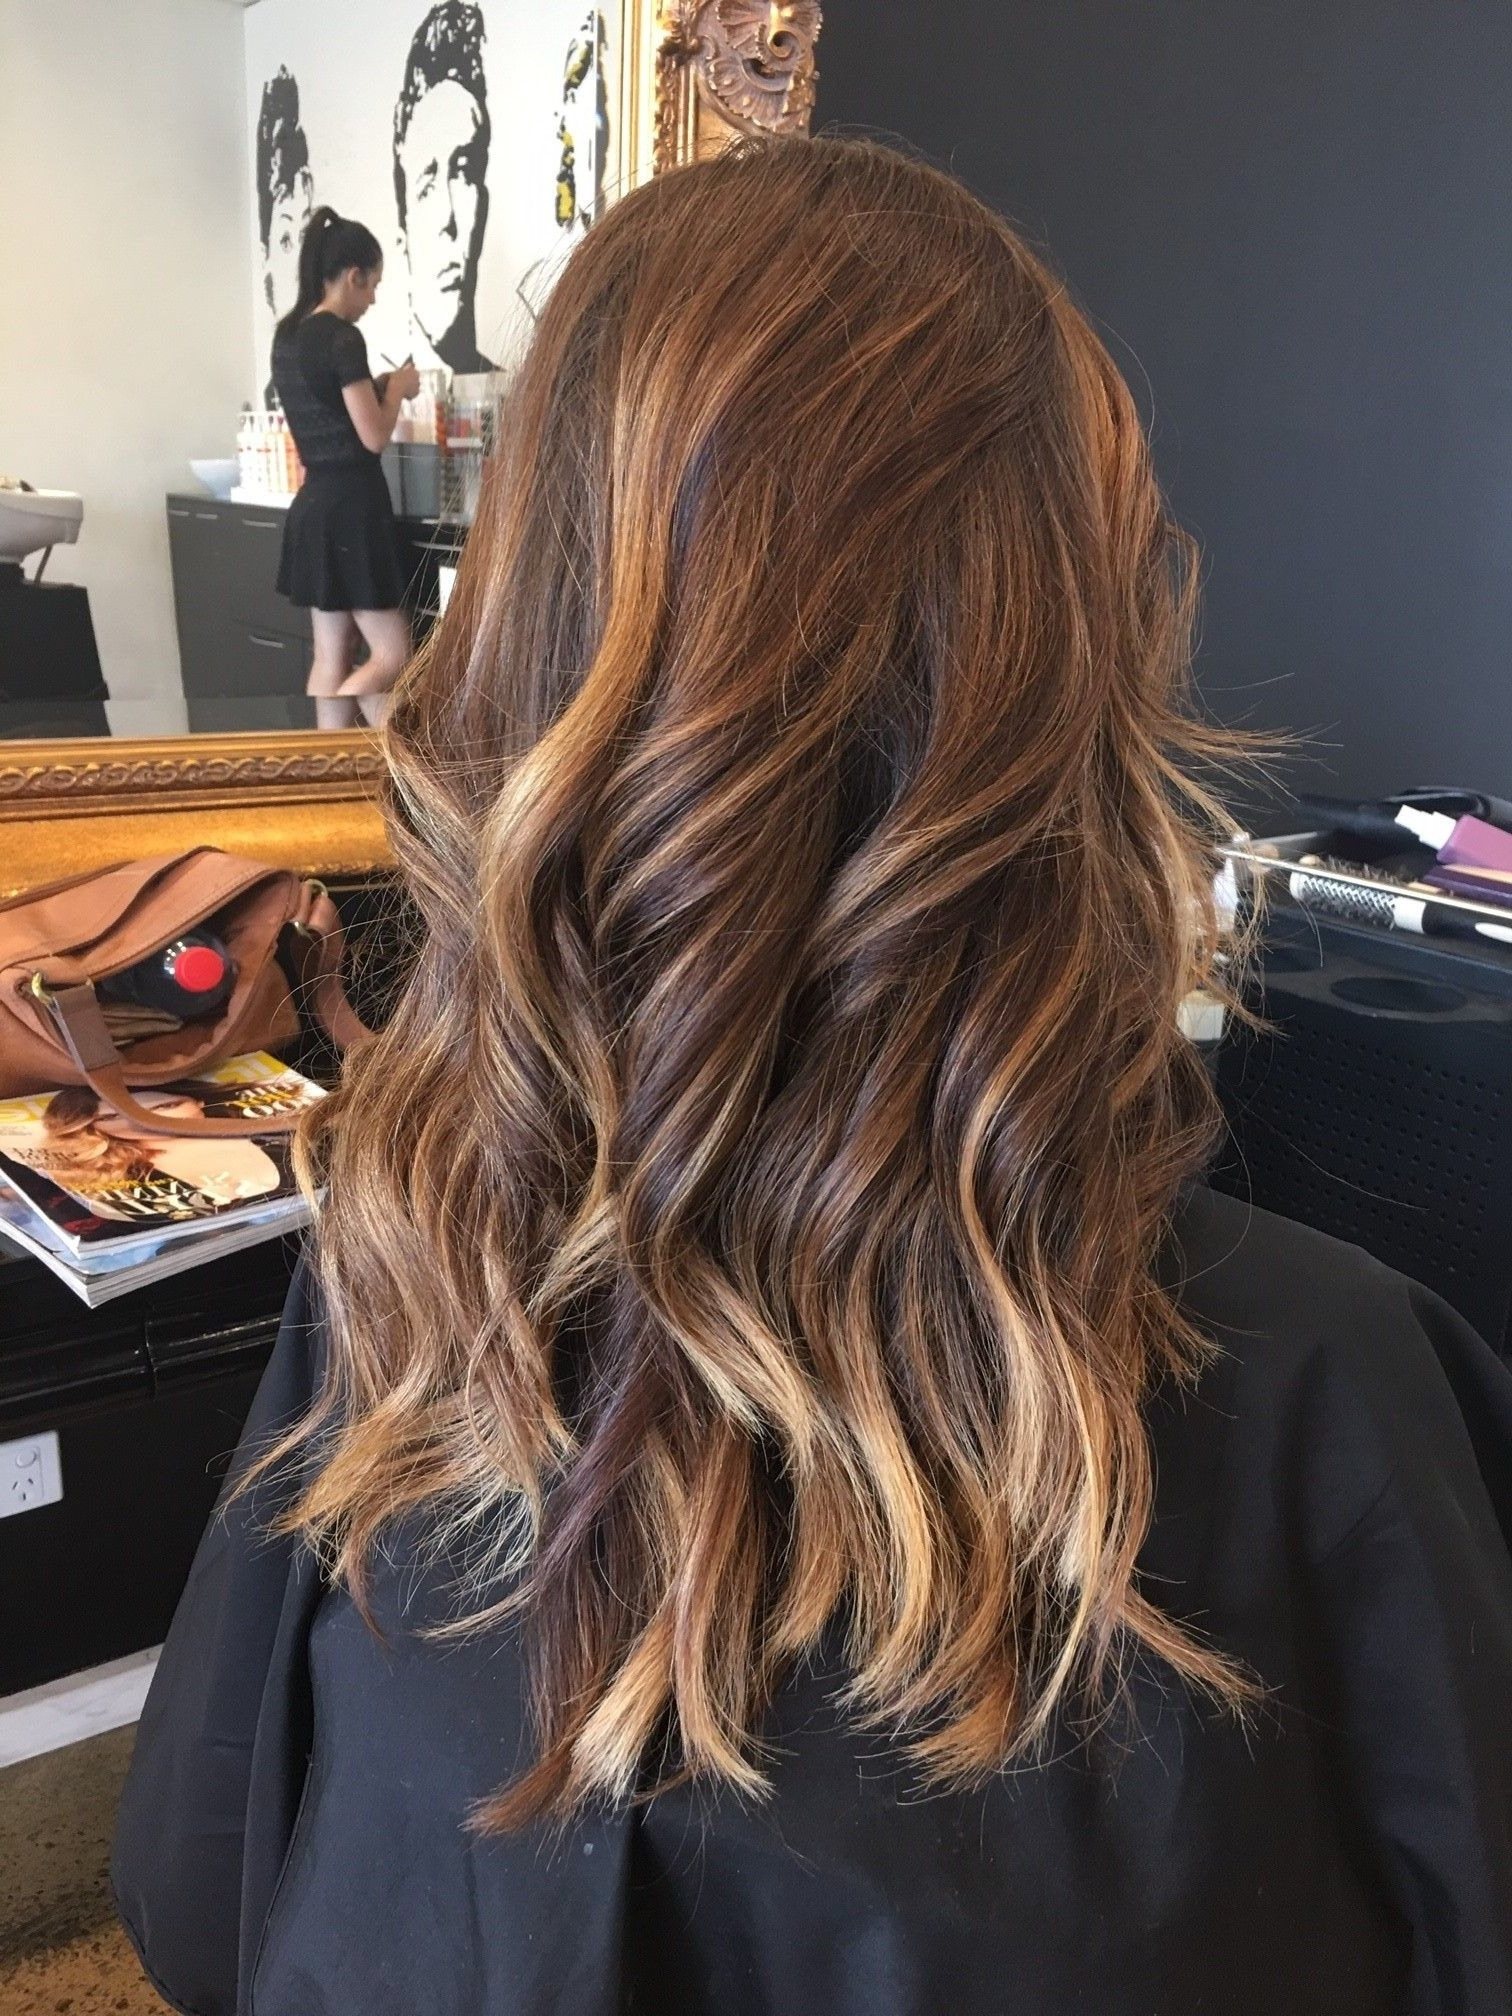 Well Known Tortoiseshell Curls Blonde Hairstyles With Regard To Kinky #curly #straight #hair #uros #mikic #tortoiseshell #adelaide (View 3 of 20)